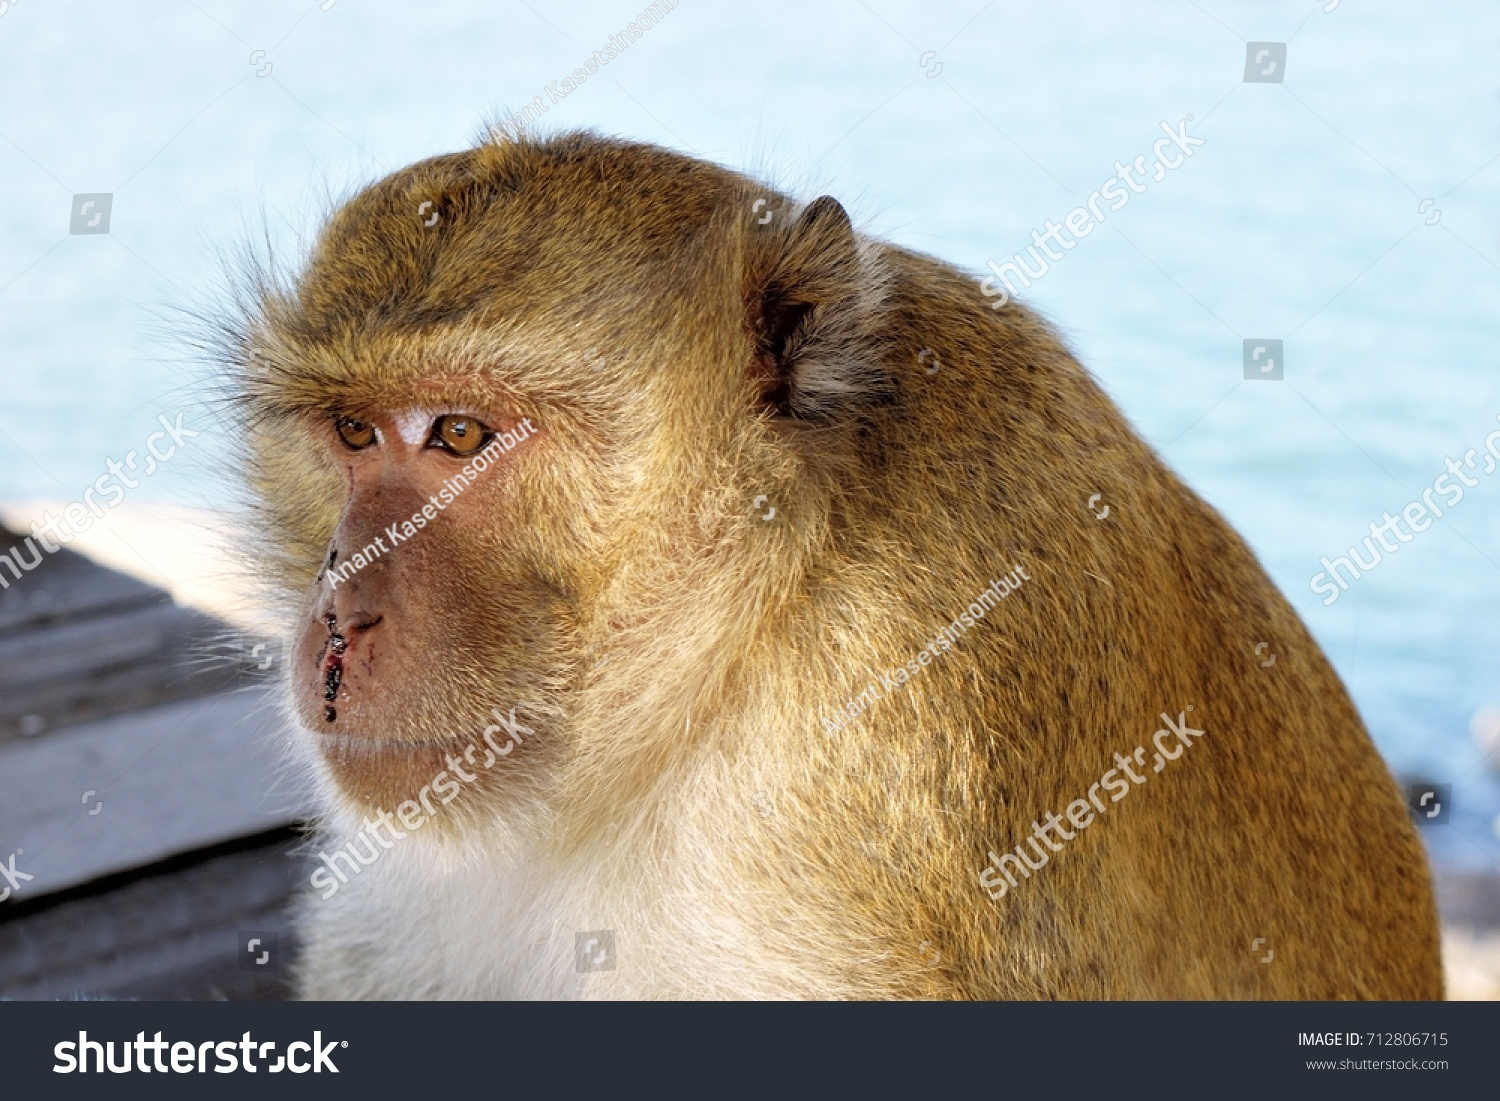 Golden hairy monkey with bloody face with sad eyes,Long-tailed macaque, Crab